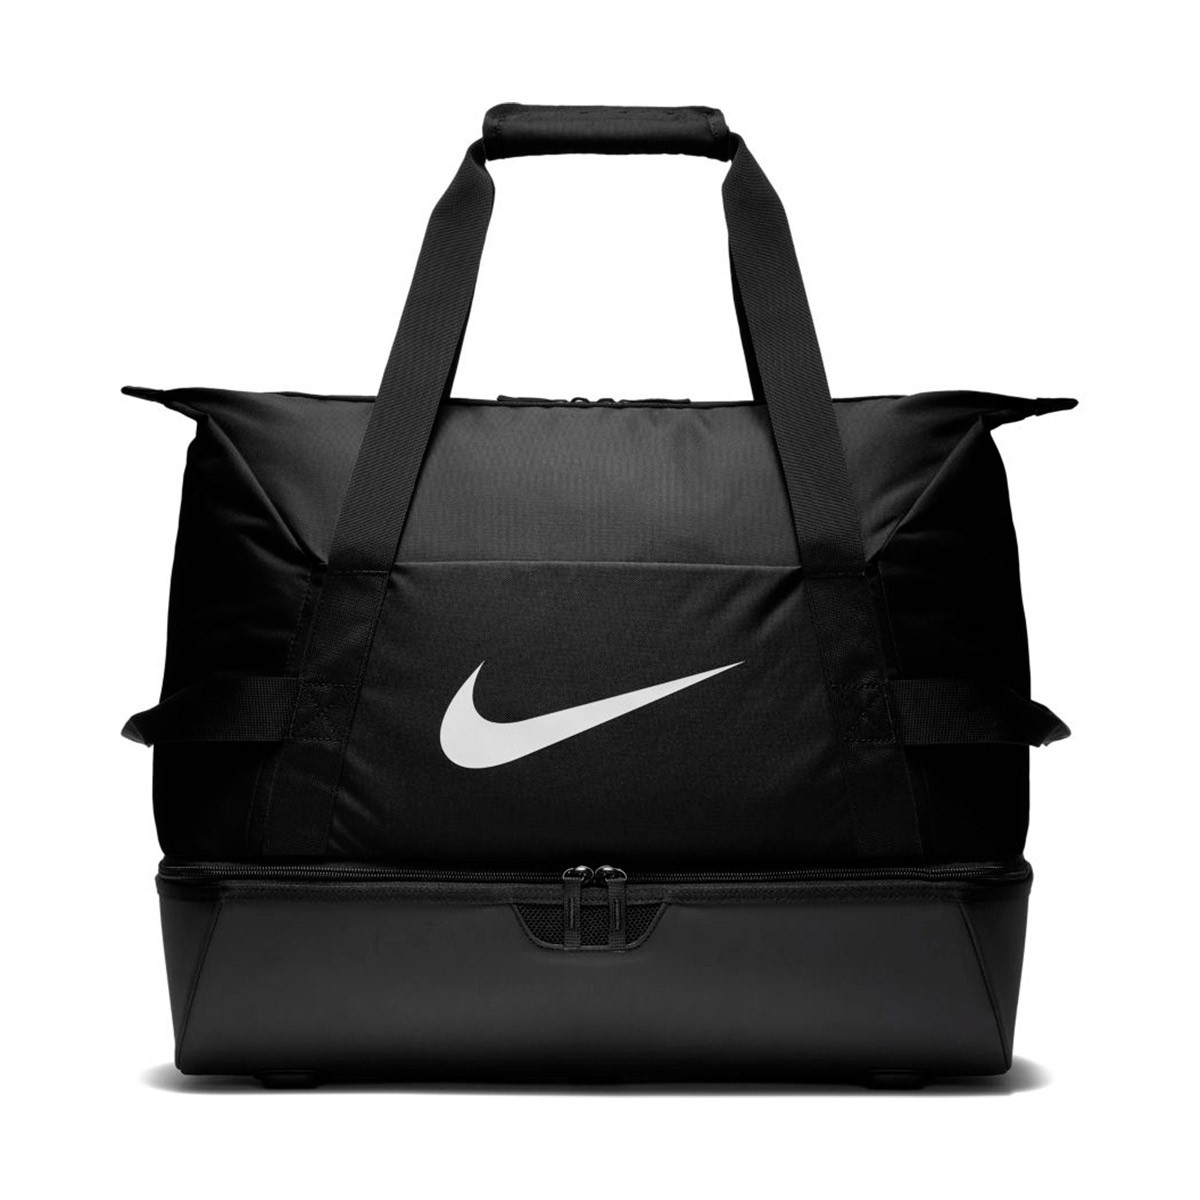 3f4f28e2d Bag Nike Academy Team Black-White - Tienda de fútbol Fútbol Emotion